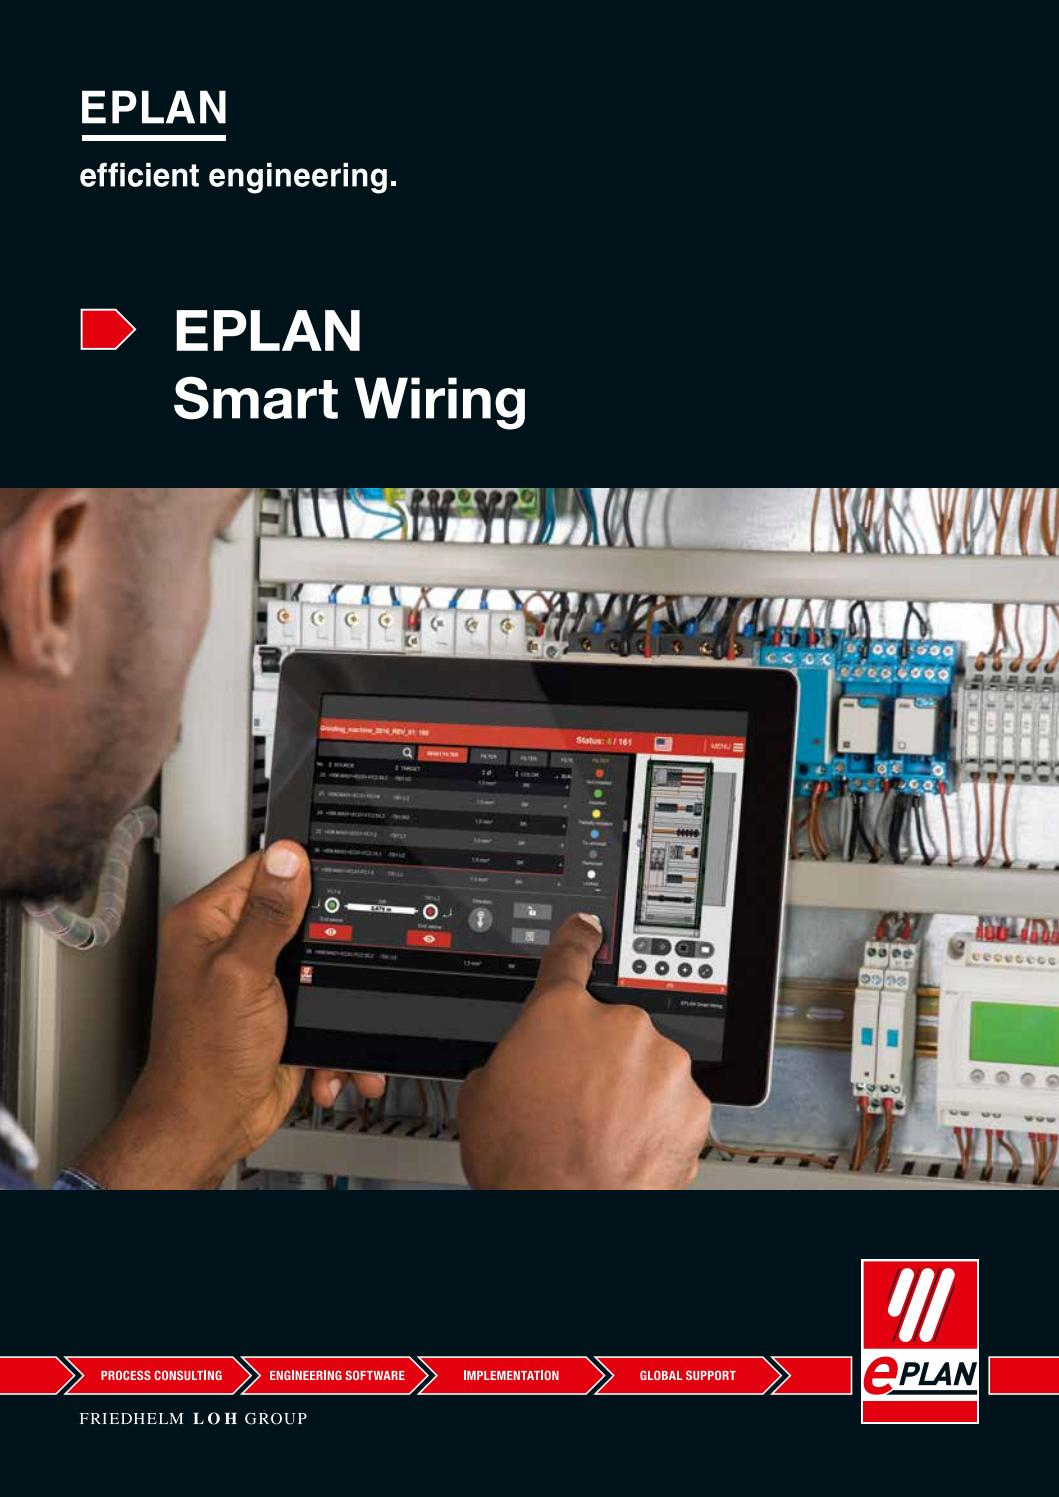 Eplan smart wiring by eplan software services s a issuu for What is eplan software